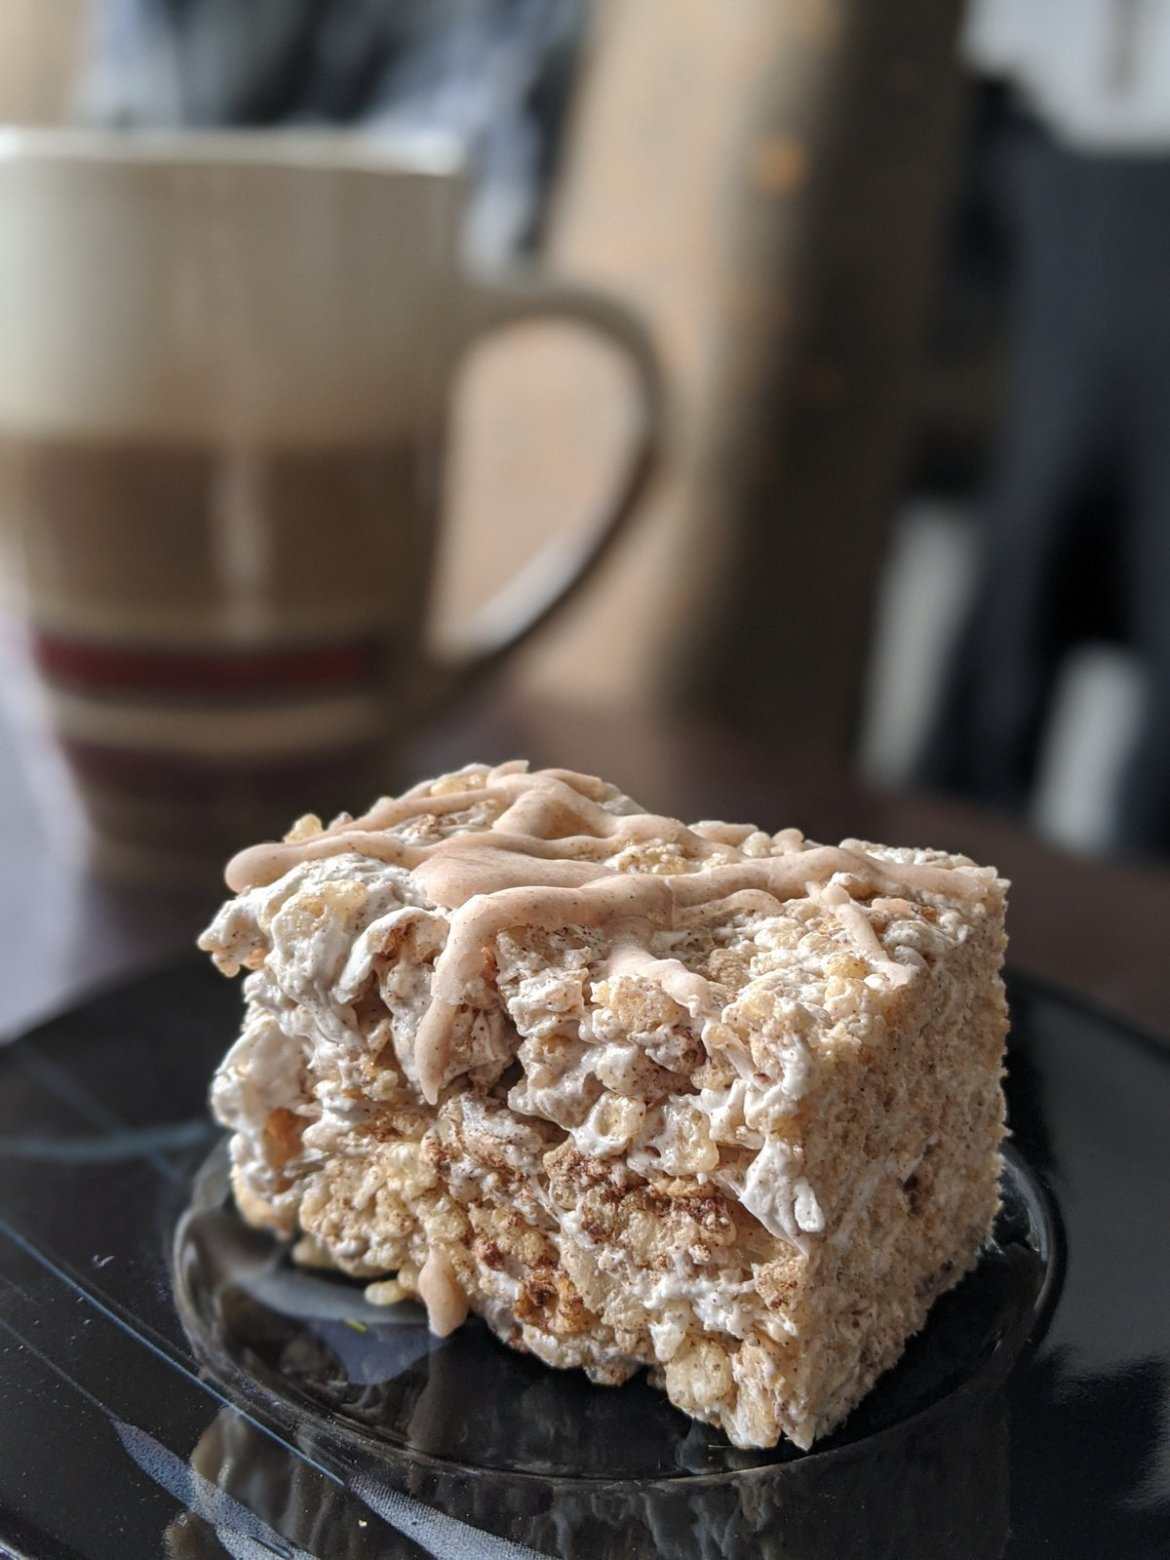 vegan rice krispy treat at The Big O Doughnuts, a vegan bakery in SLC